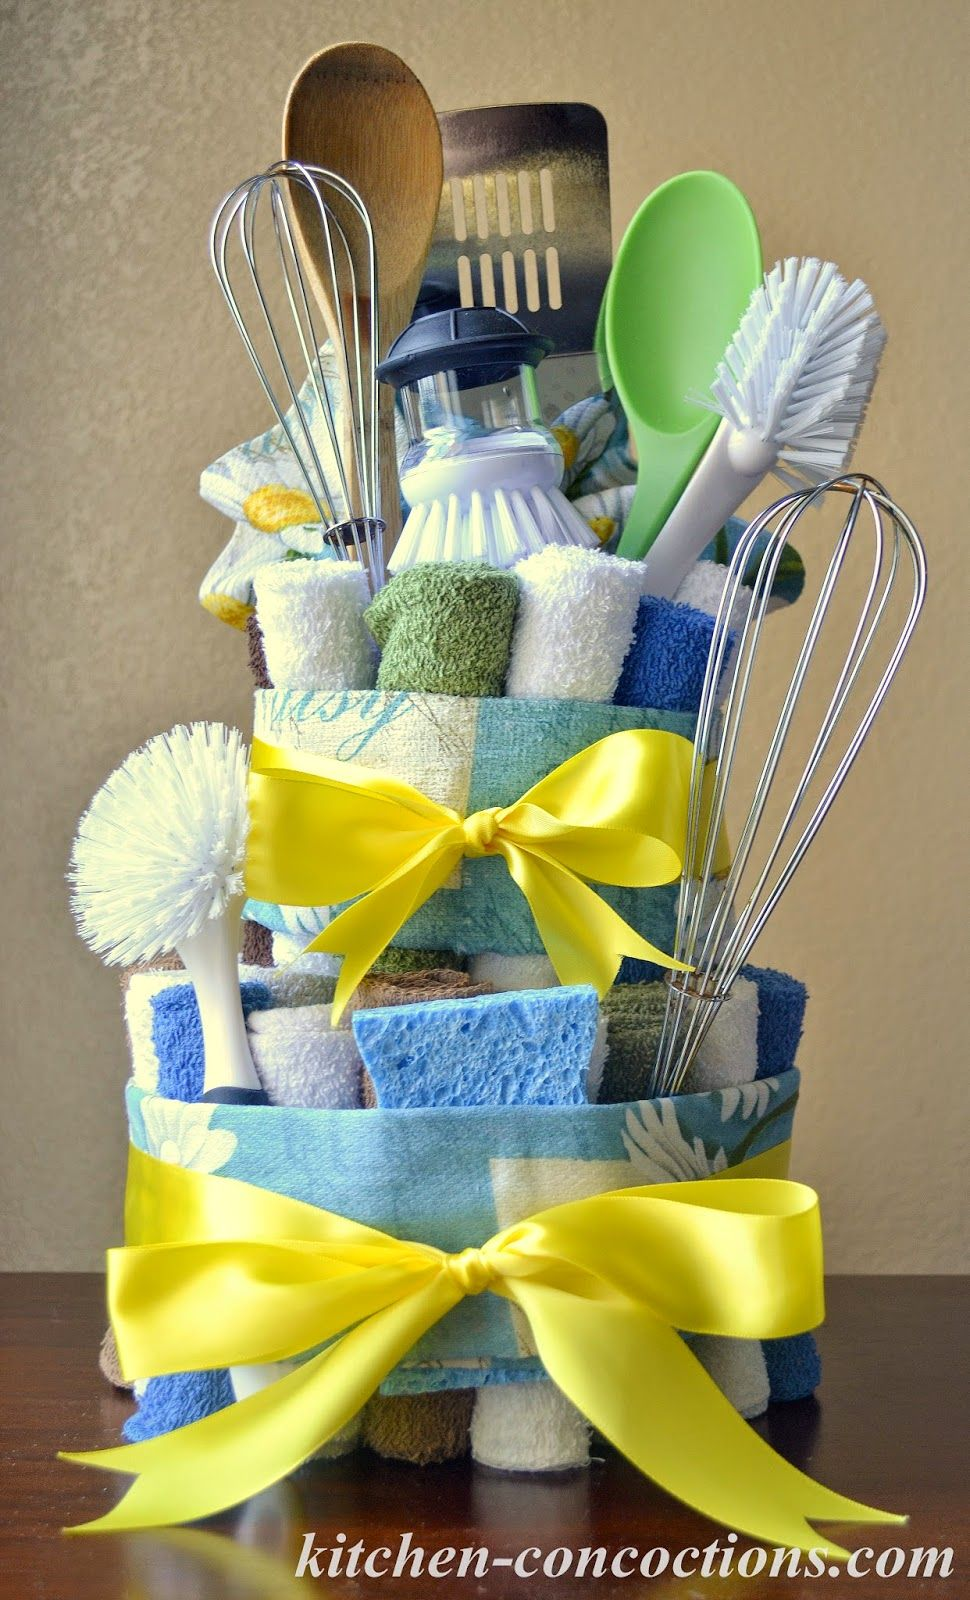 Kitchen Concoctions  Creative Soap Ideas  Dish Towel Cake (Step-by-Step  Tutorial)  Palmolive25Ways  cbias 1b48722839